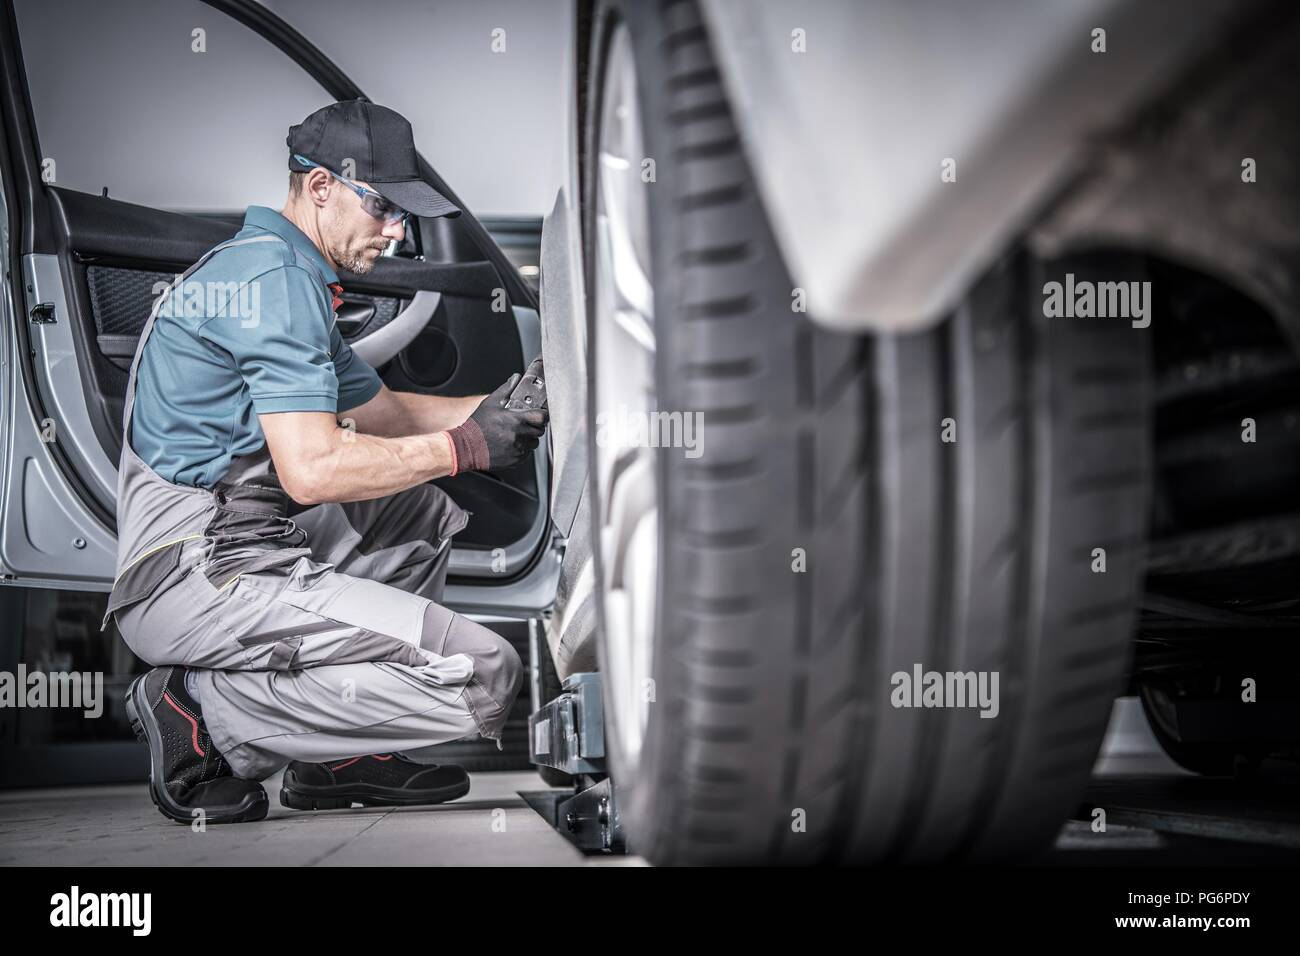 Used Car Under Maintenance. Caucasian Car Mechanic Looking For Potential Problems Inside the Vehicle. - Stock Image